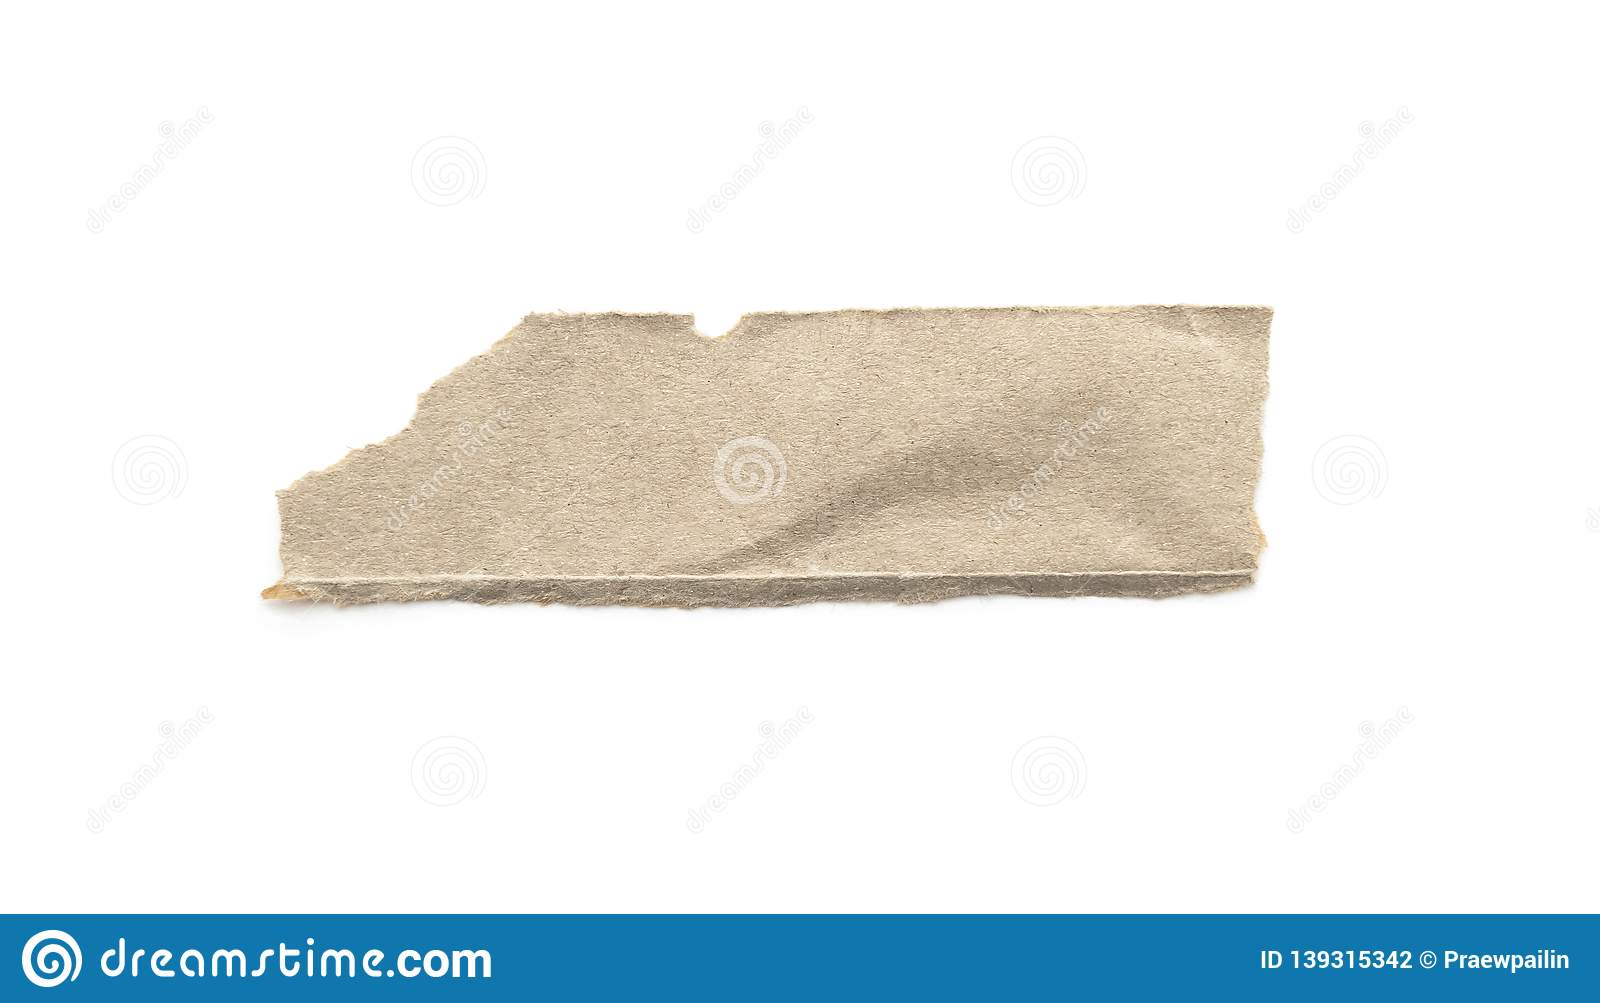 Recycled paper craft stick on a white background. Brown paper torn or ripped pieces of paper isolated on white